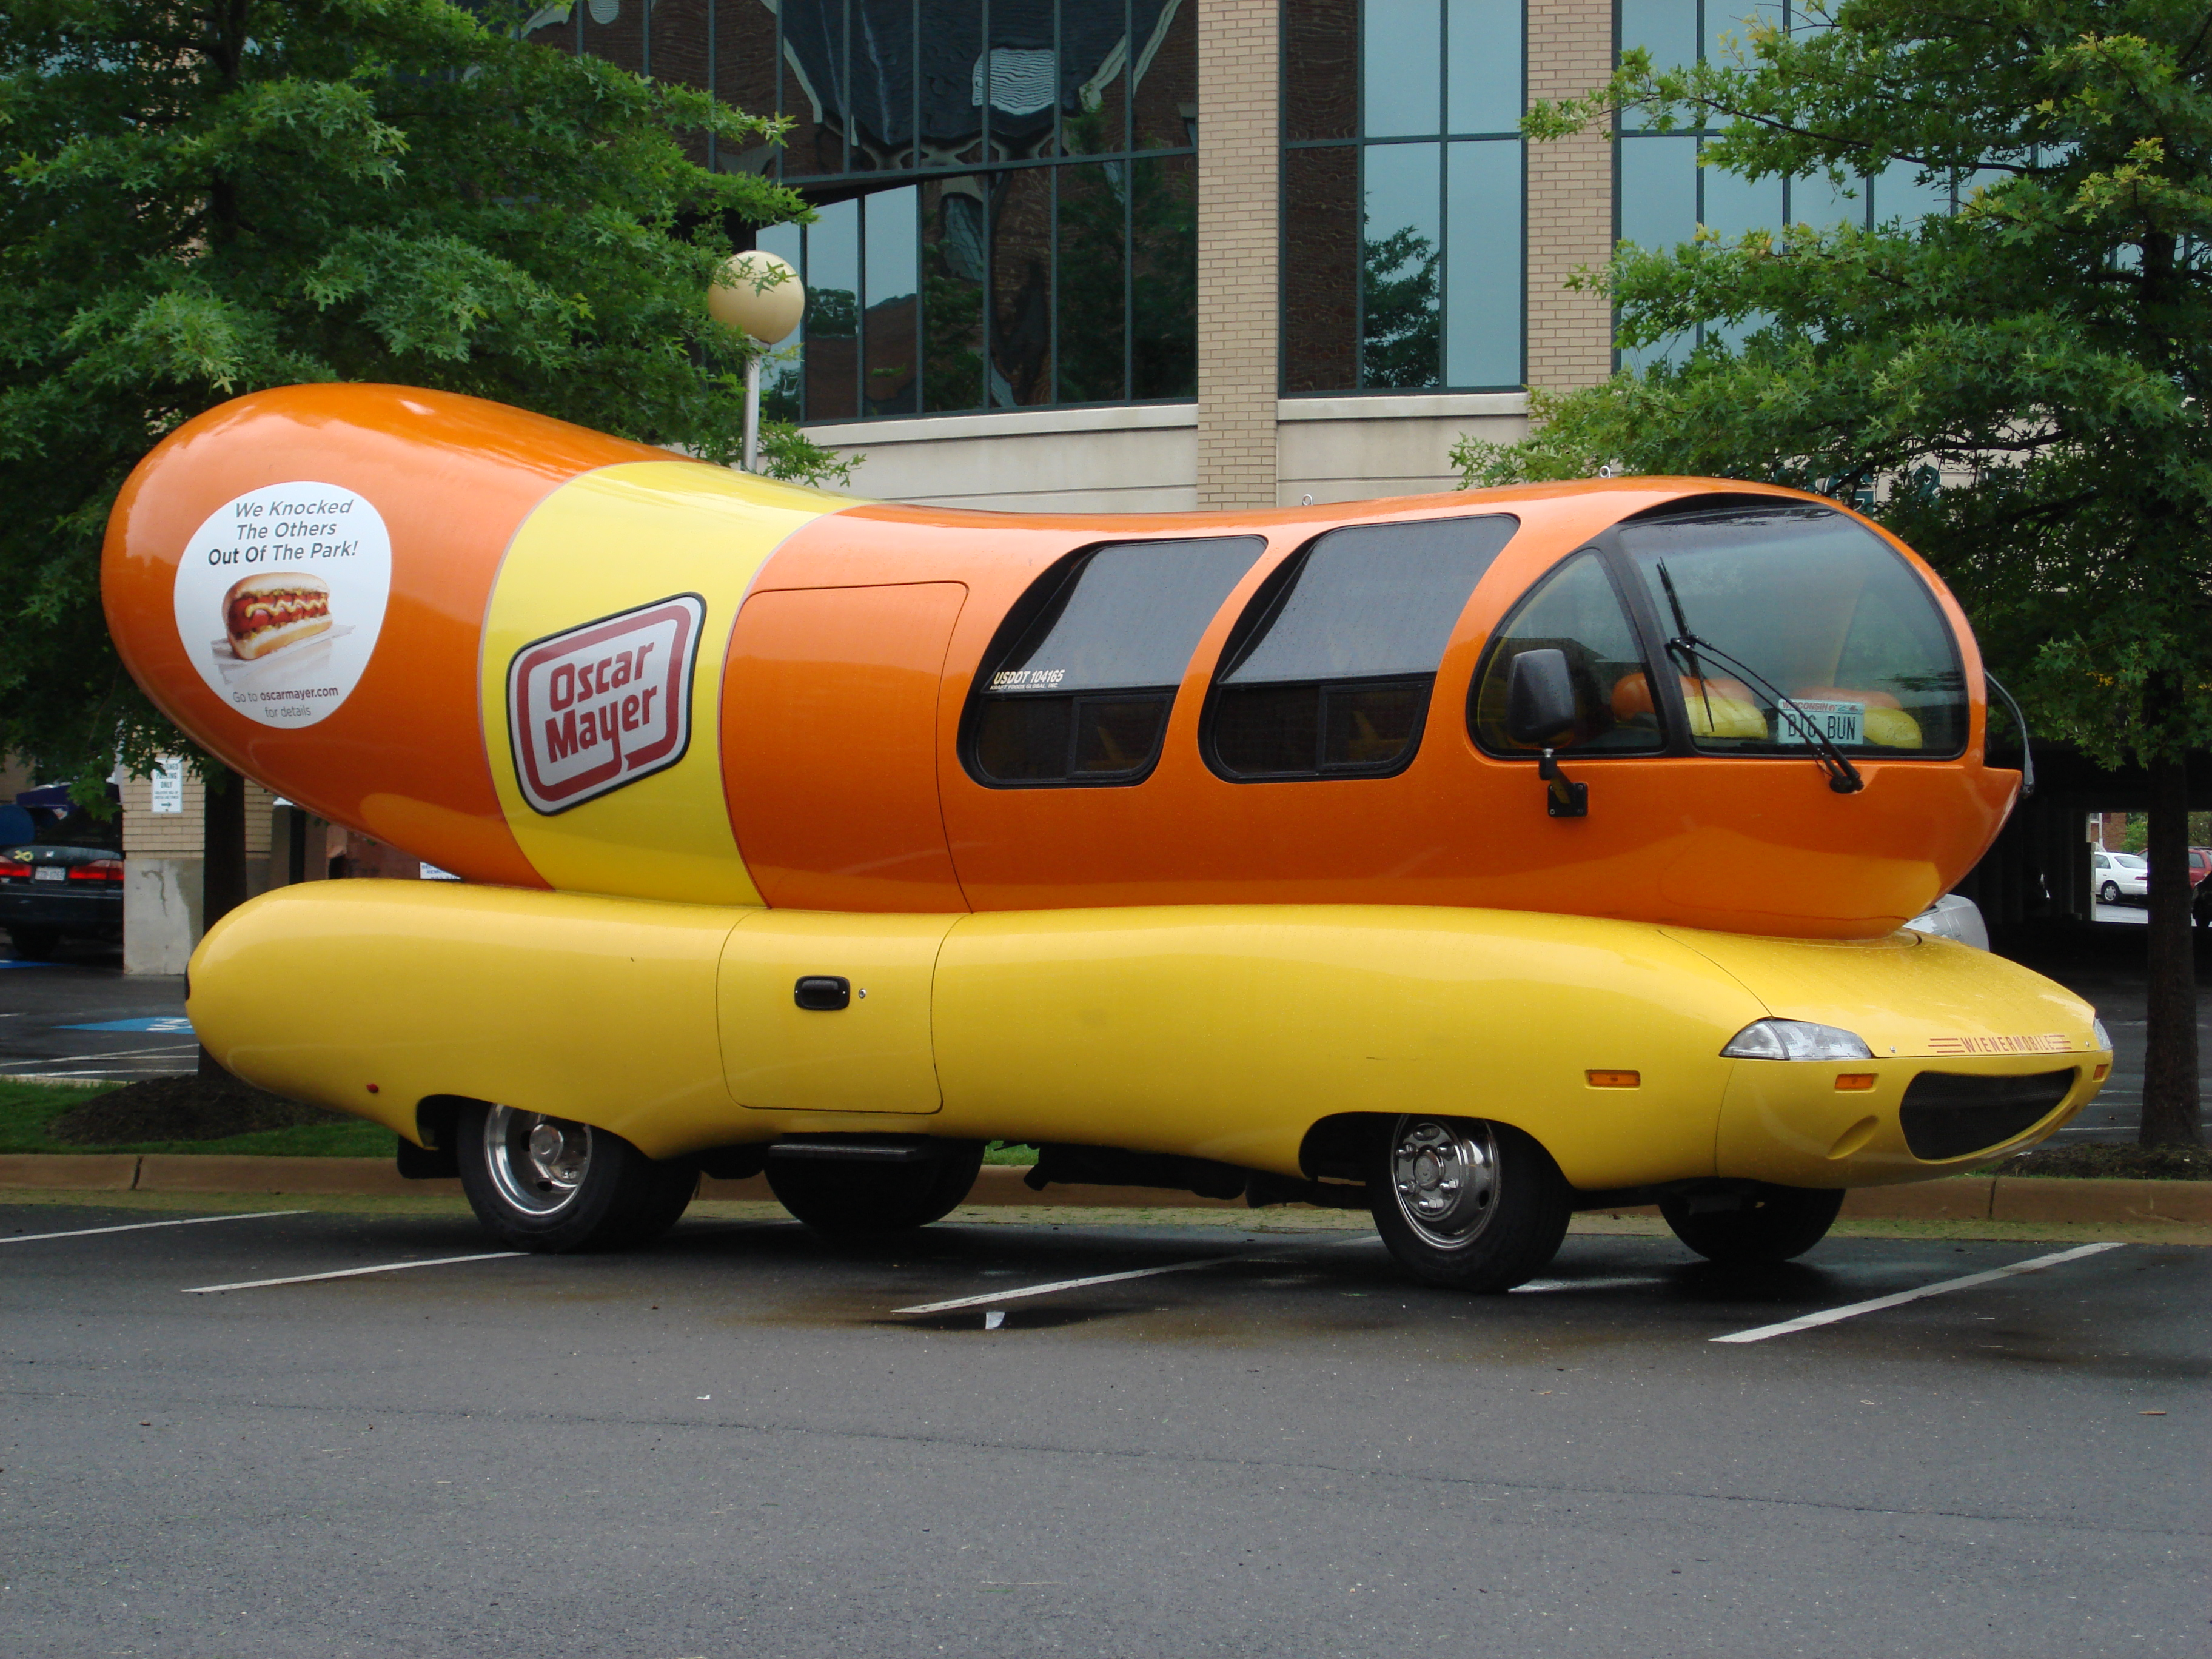 A Dog Gone Shame Oscar Mayer Wienermobile Crashes In The Snow as well Mayer 2Coscar besides Can 20you 20find  20The 201967 20Batmobile  20the 20Oscar 20Mayer 20Weinermobile  20a 20hearst further Wienermobile Facts furthermore Timeline. on oscar wienermobile in the snow